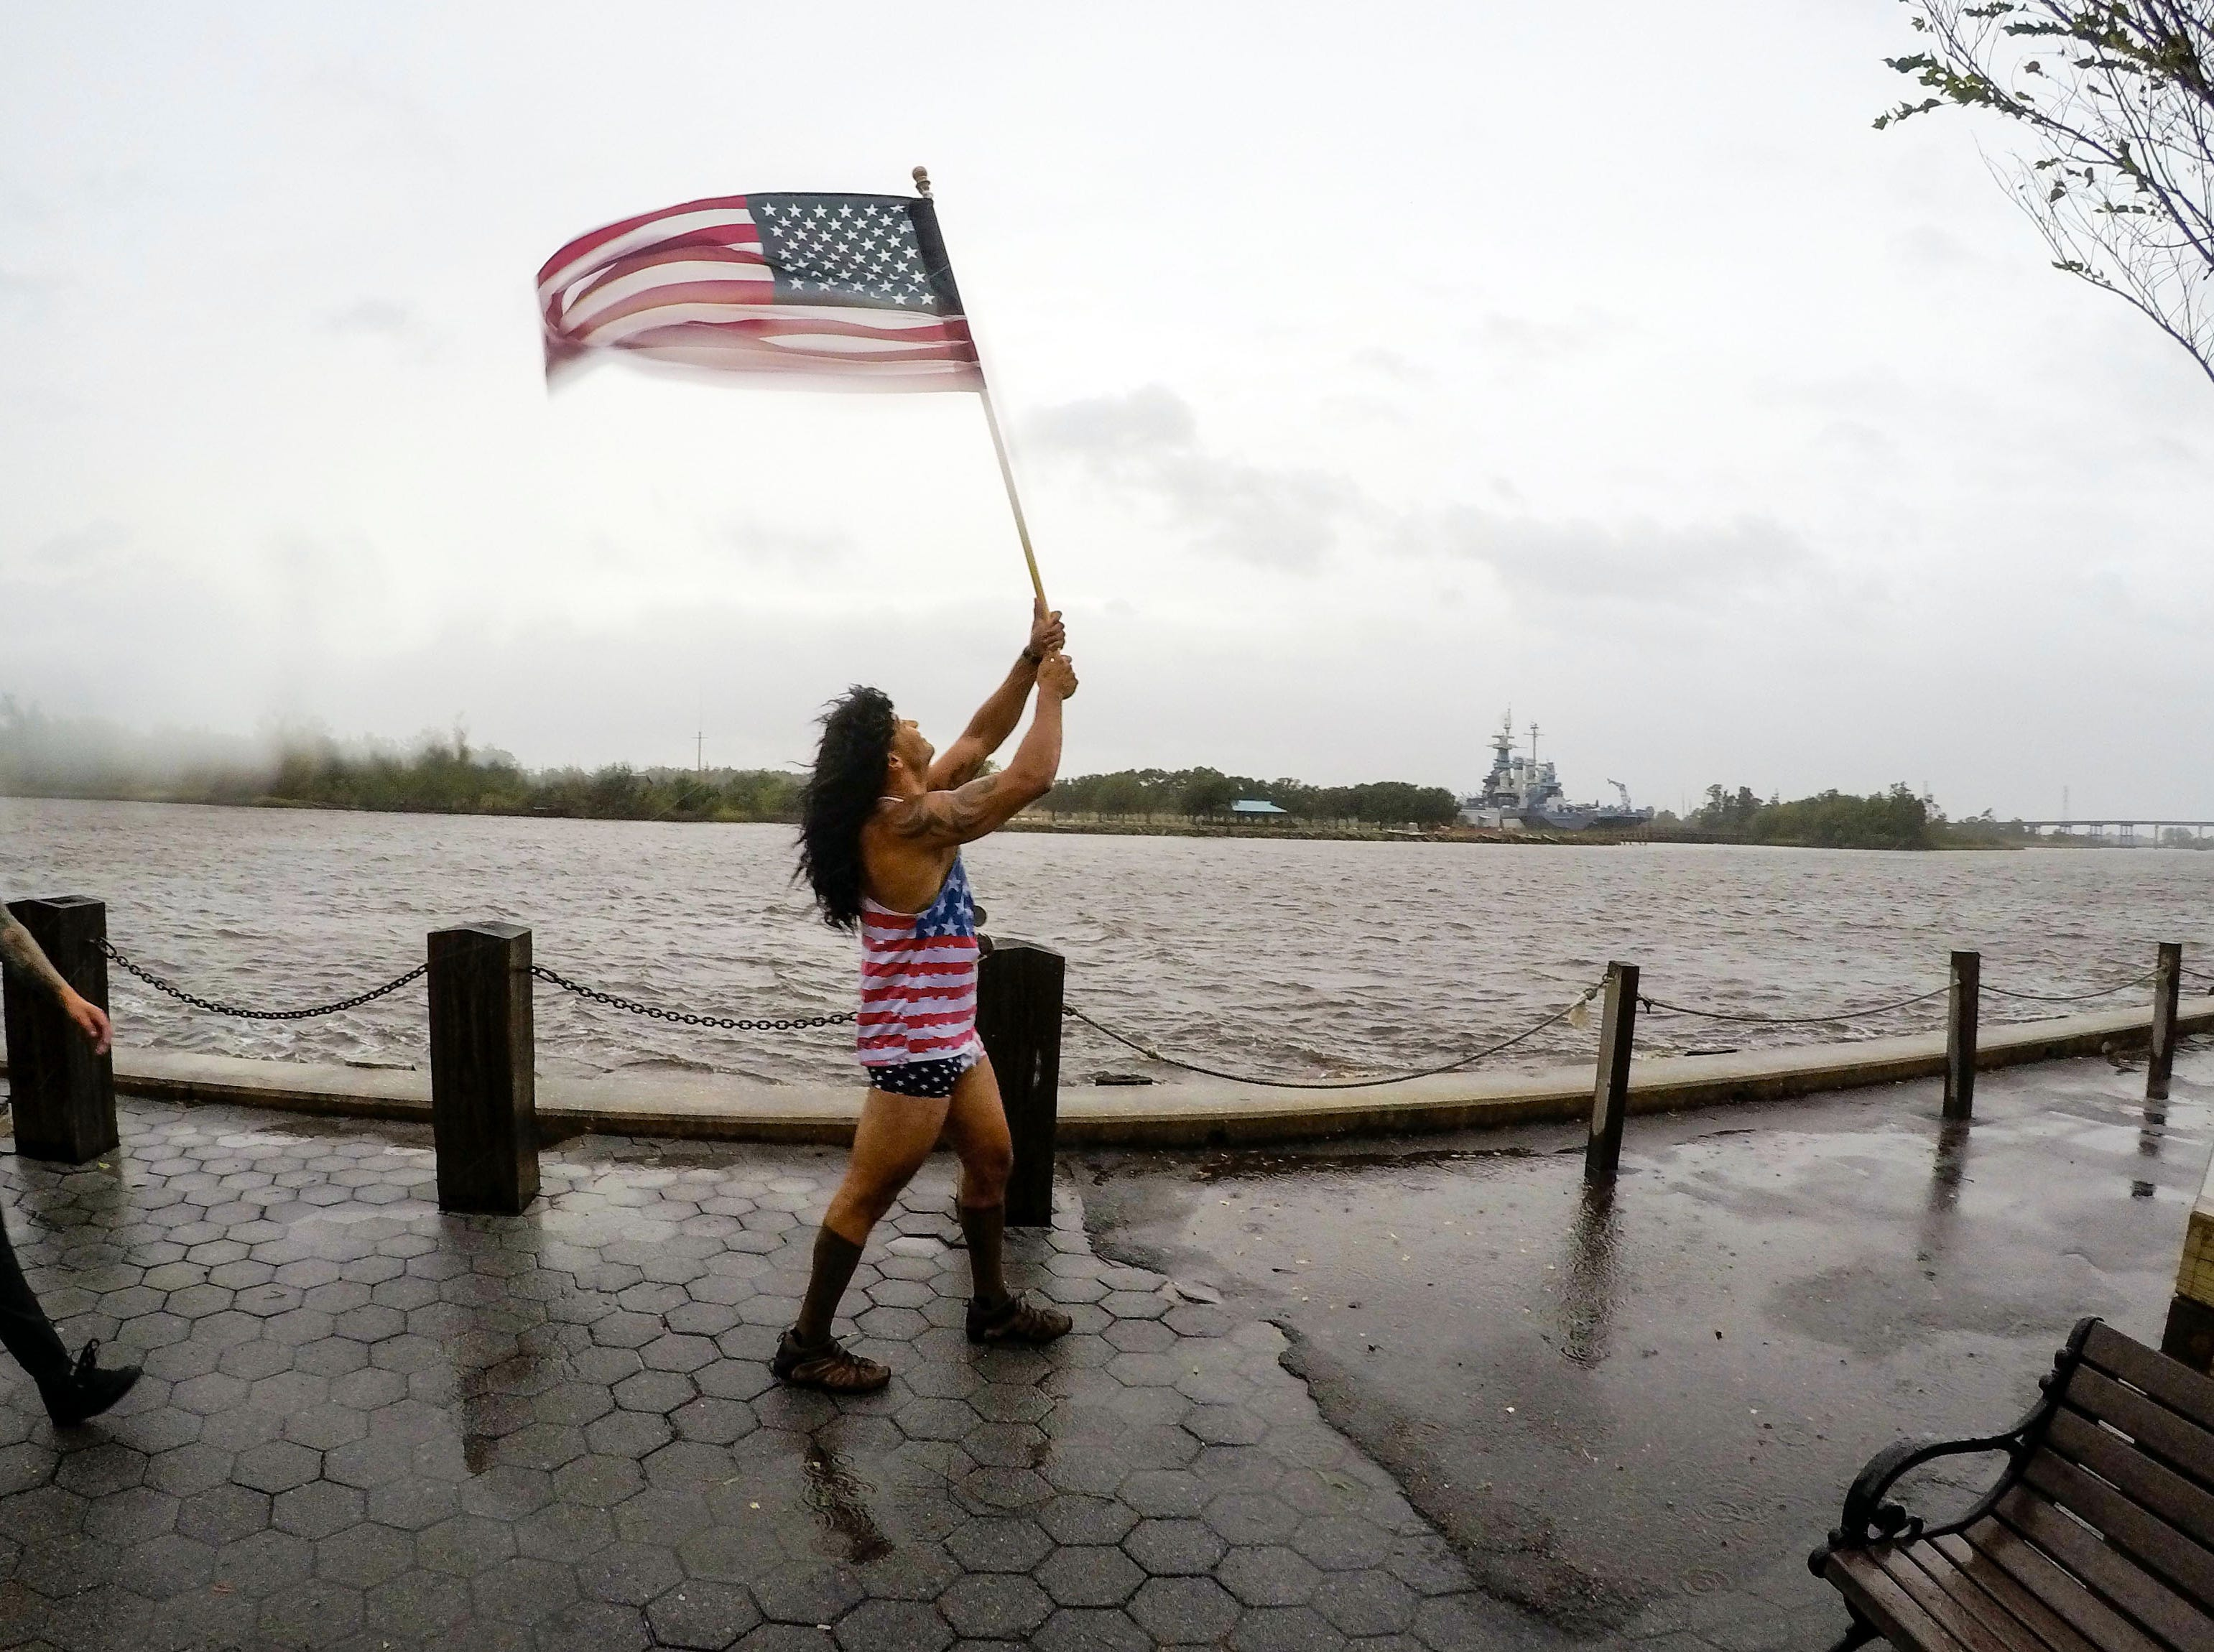 Sept 13, 2018; Wilmington, NC, USA; Jeff Egyp carries a United States flag in windy conditions along the Cape Fear River in downtown.